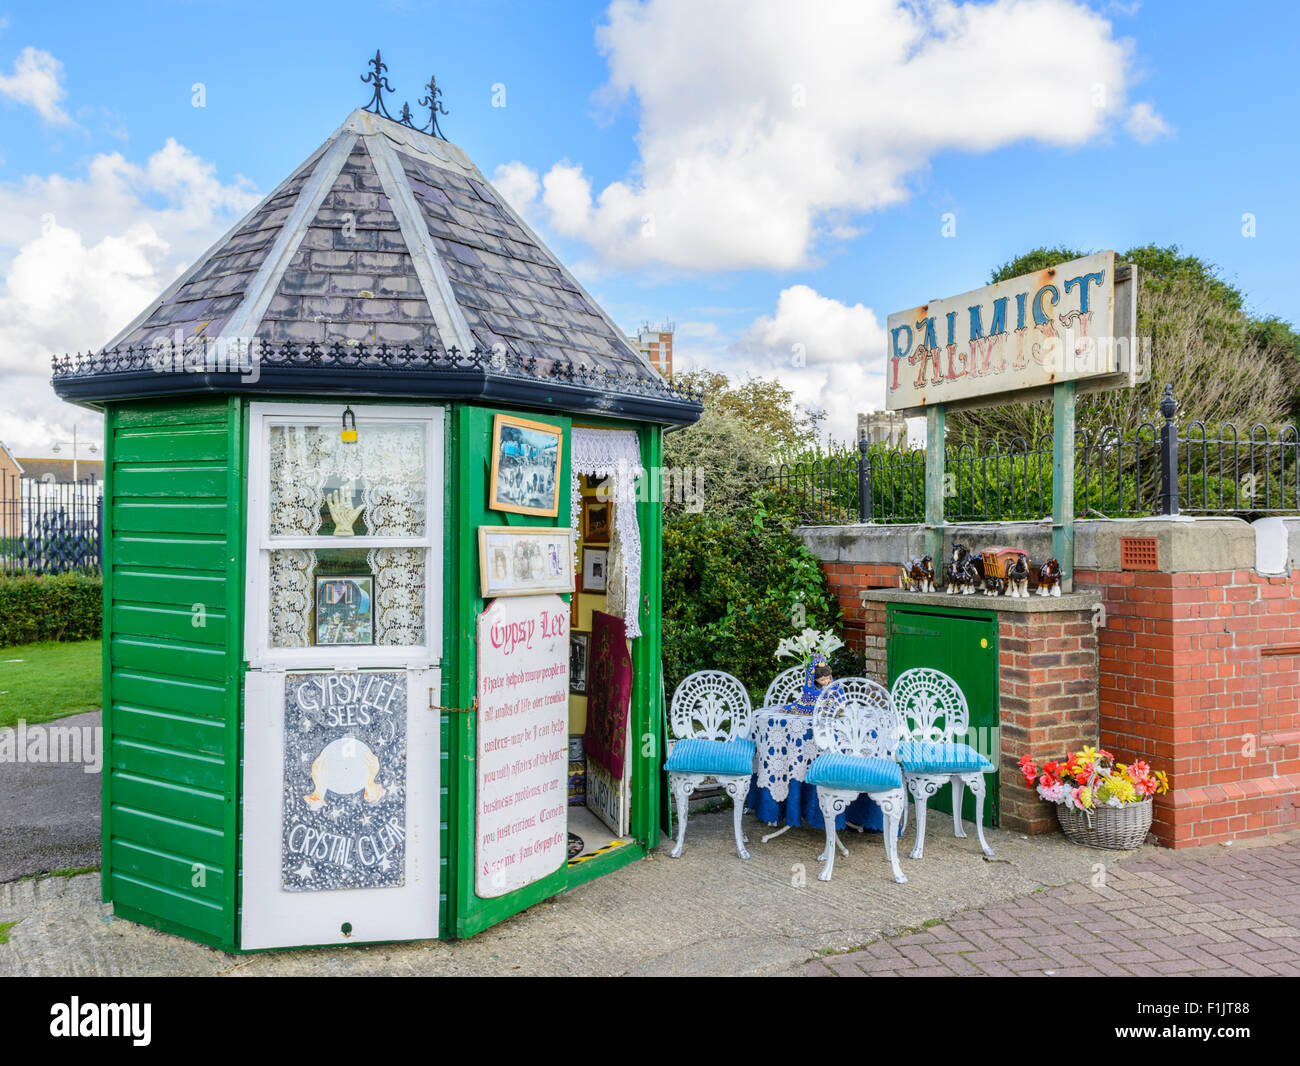 A Palmist's hut belonging to Gypsy Lee - A local Palmist by the toilets on the seafront in Bognor Regis, West - Stock Image